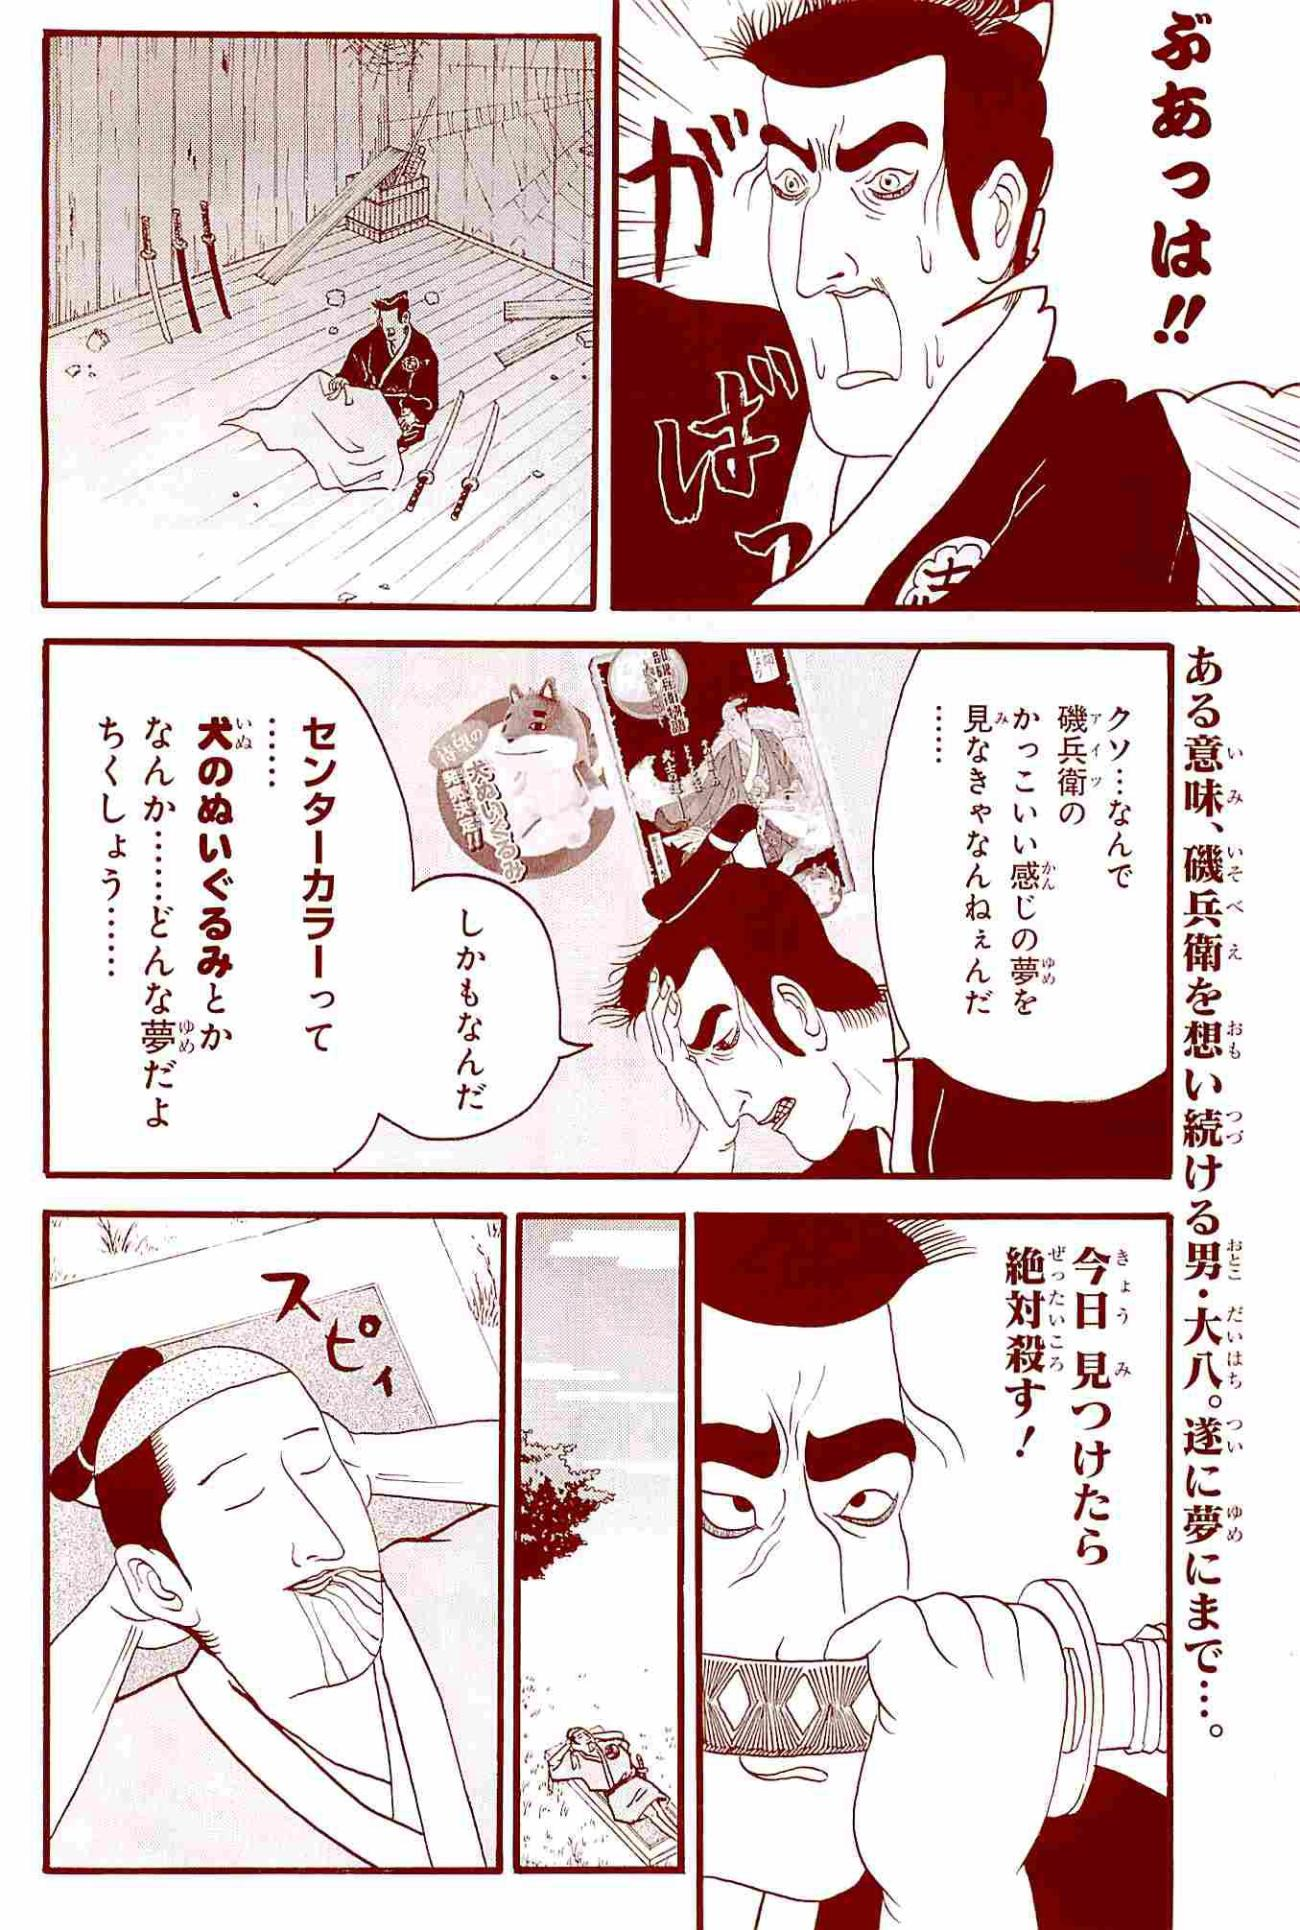 Isobe page2_wsj_2014_30